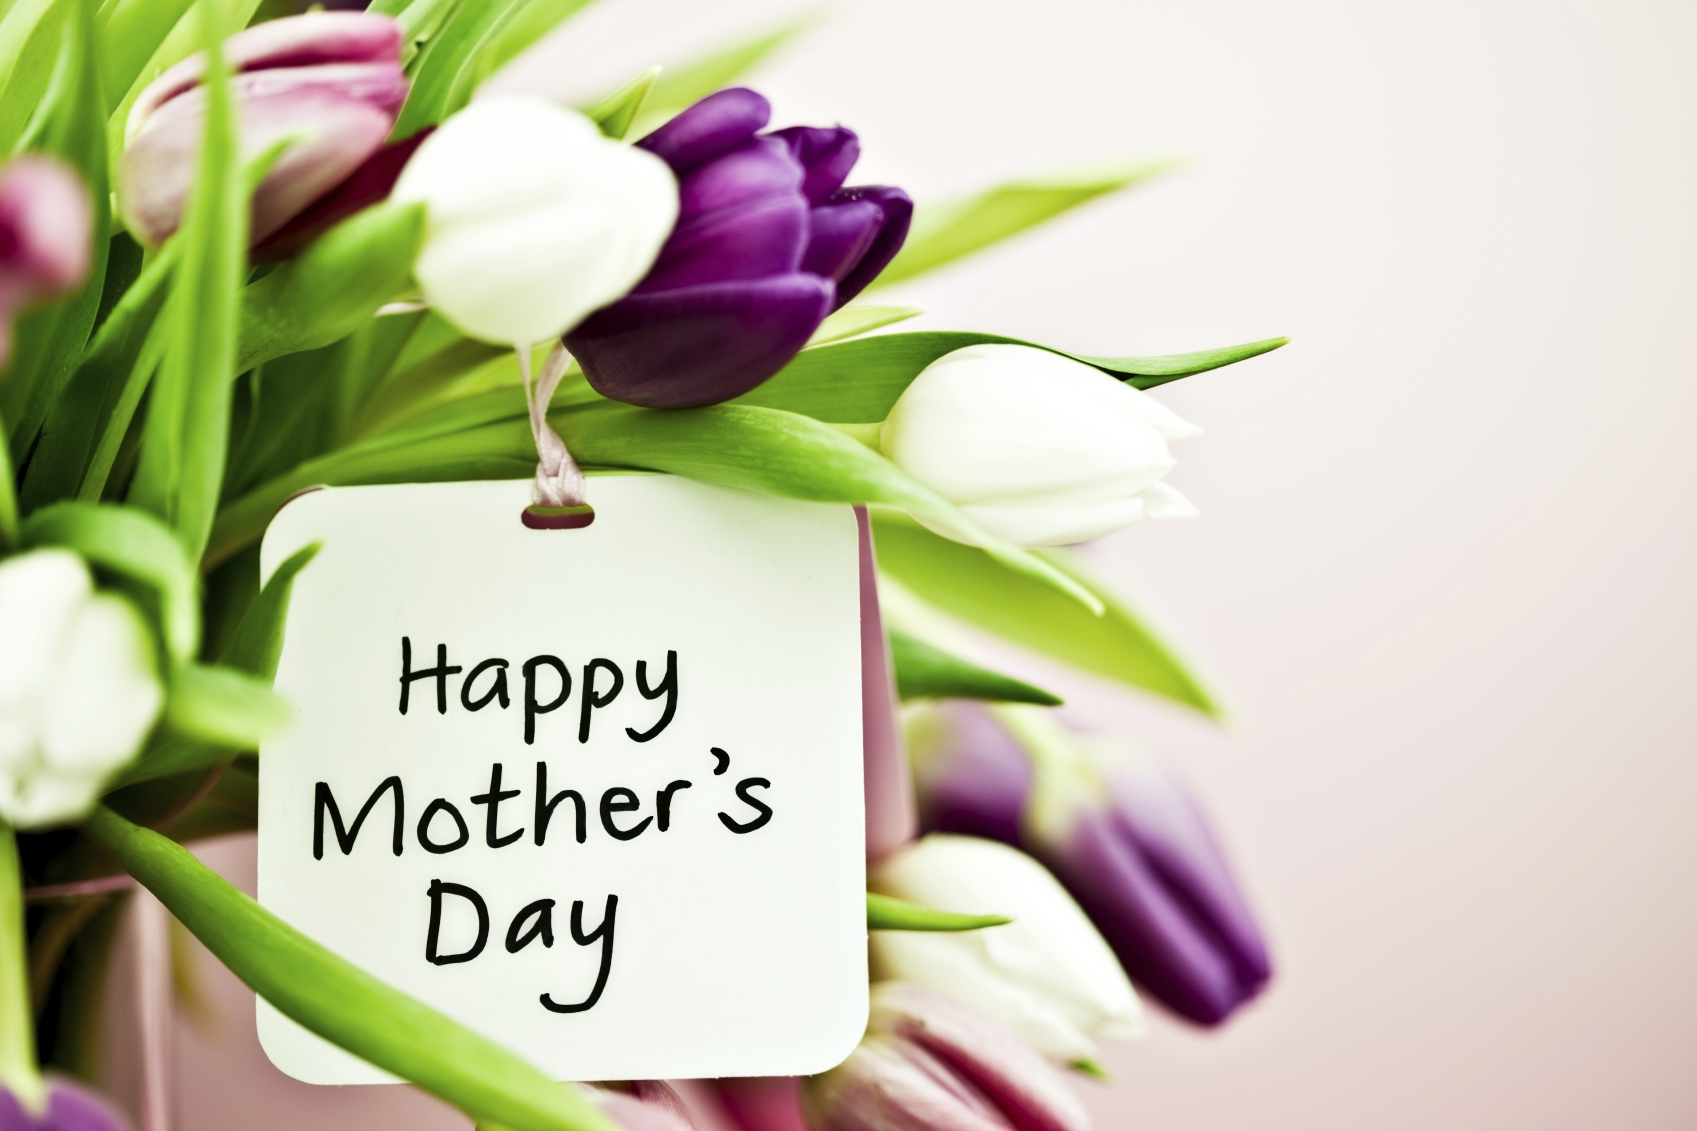 We now have Mother's Day Cards in stock if you'd like to come down to the CRC and have a look.. We can even make personal ones for you! :)